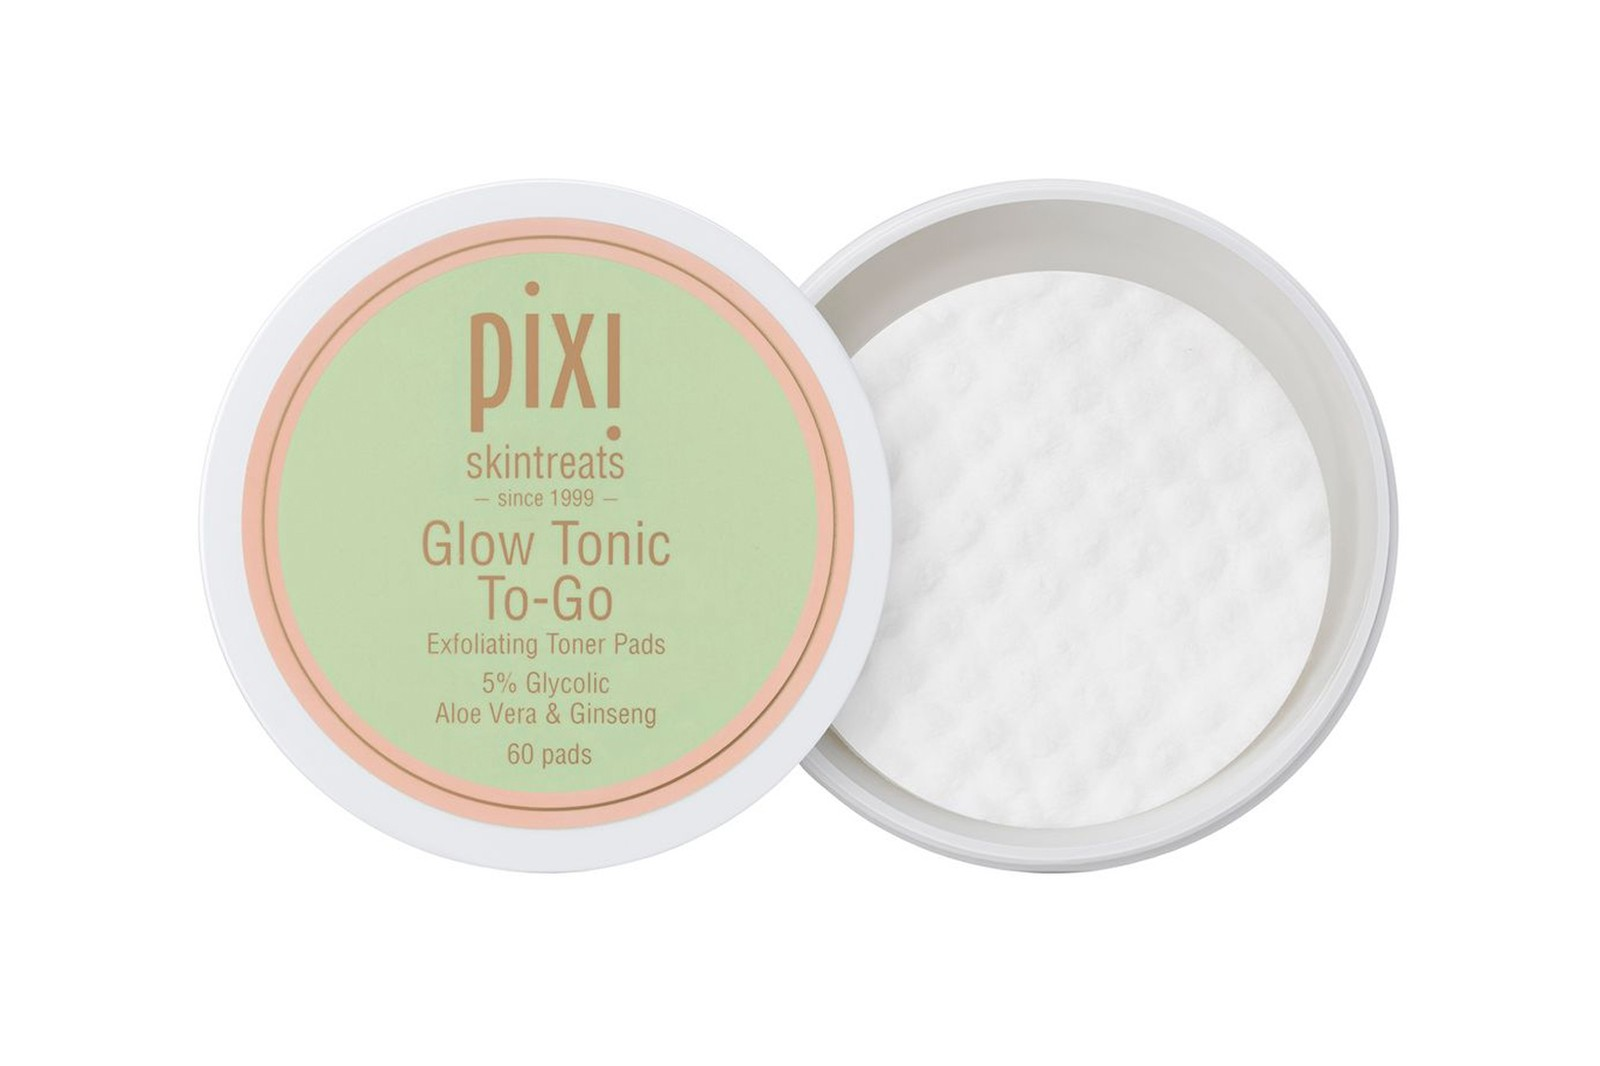 best toner pads acne facial skincare pixi ohii bliss omorovicza